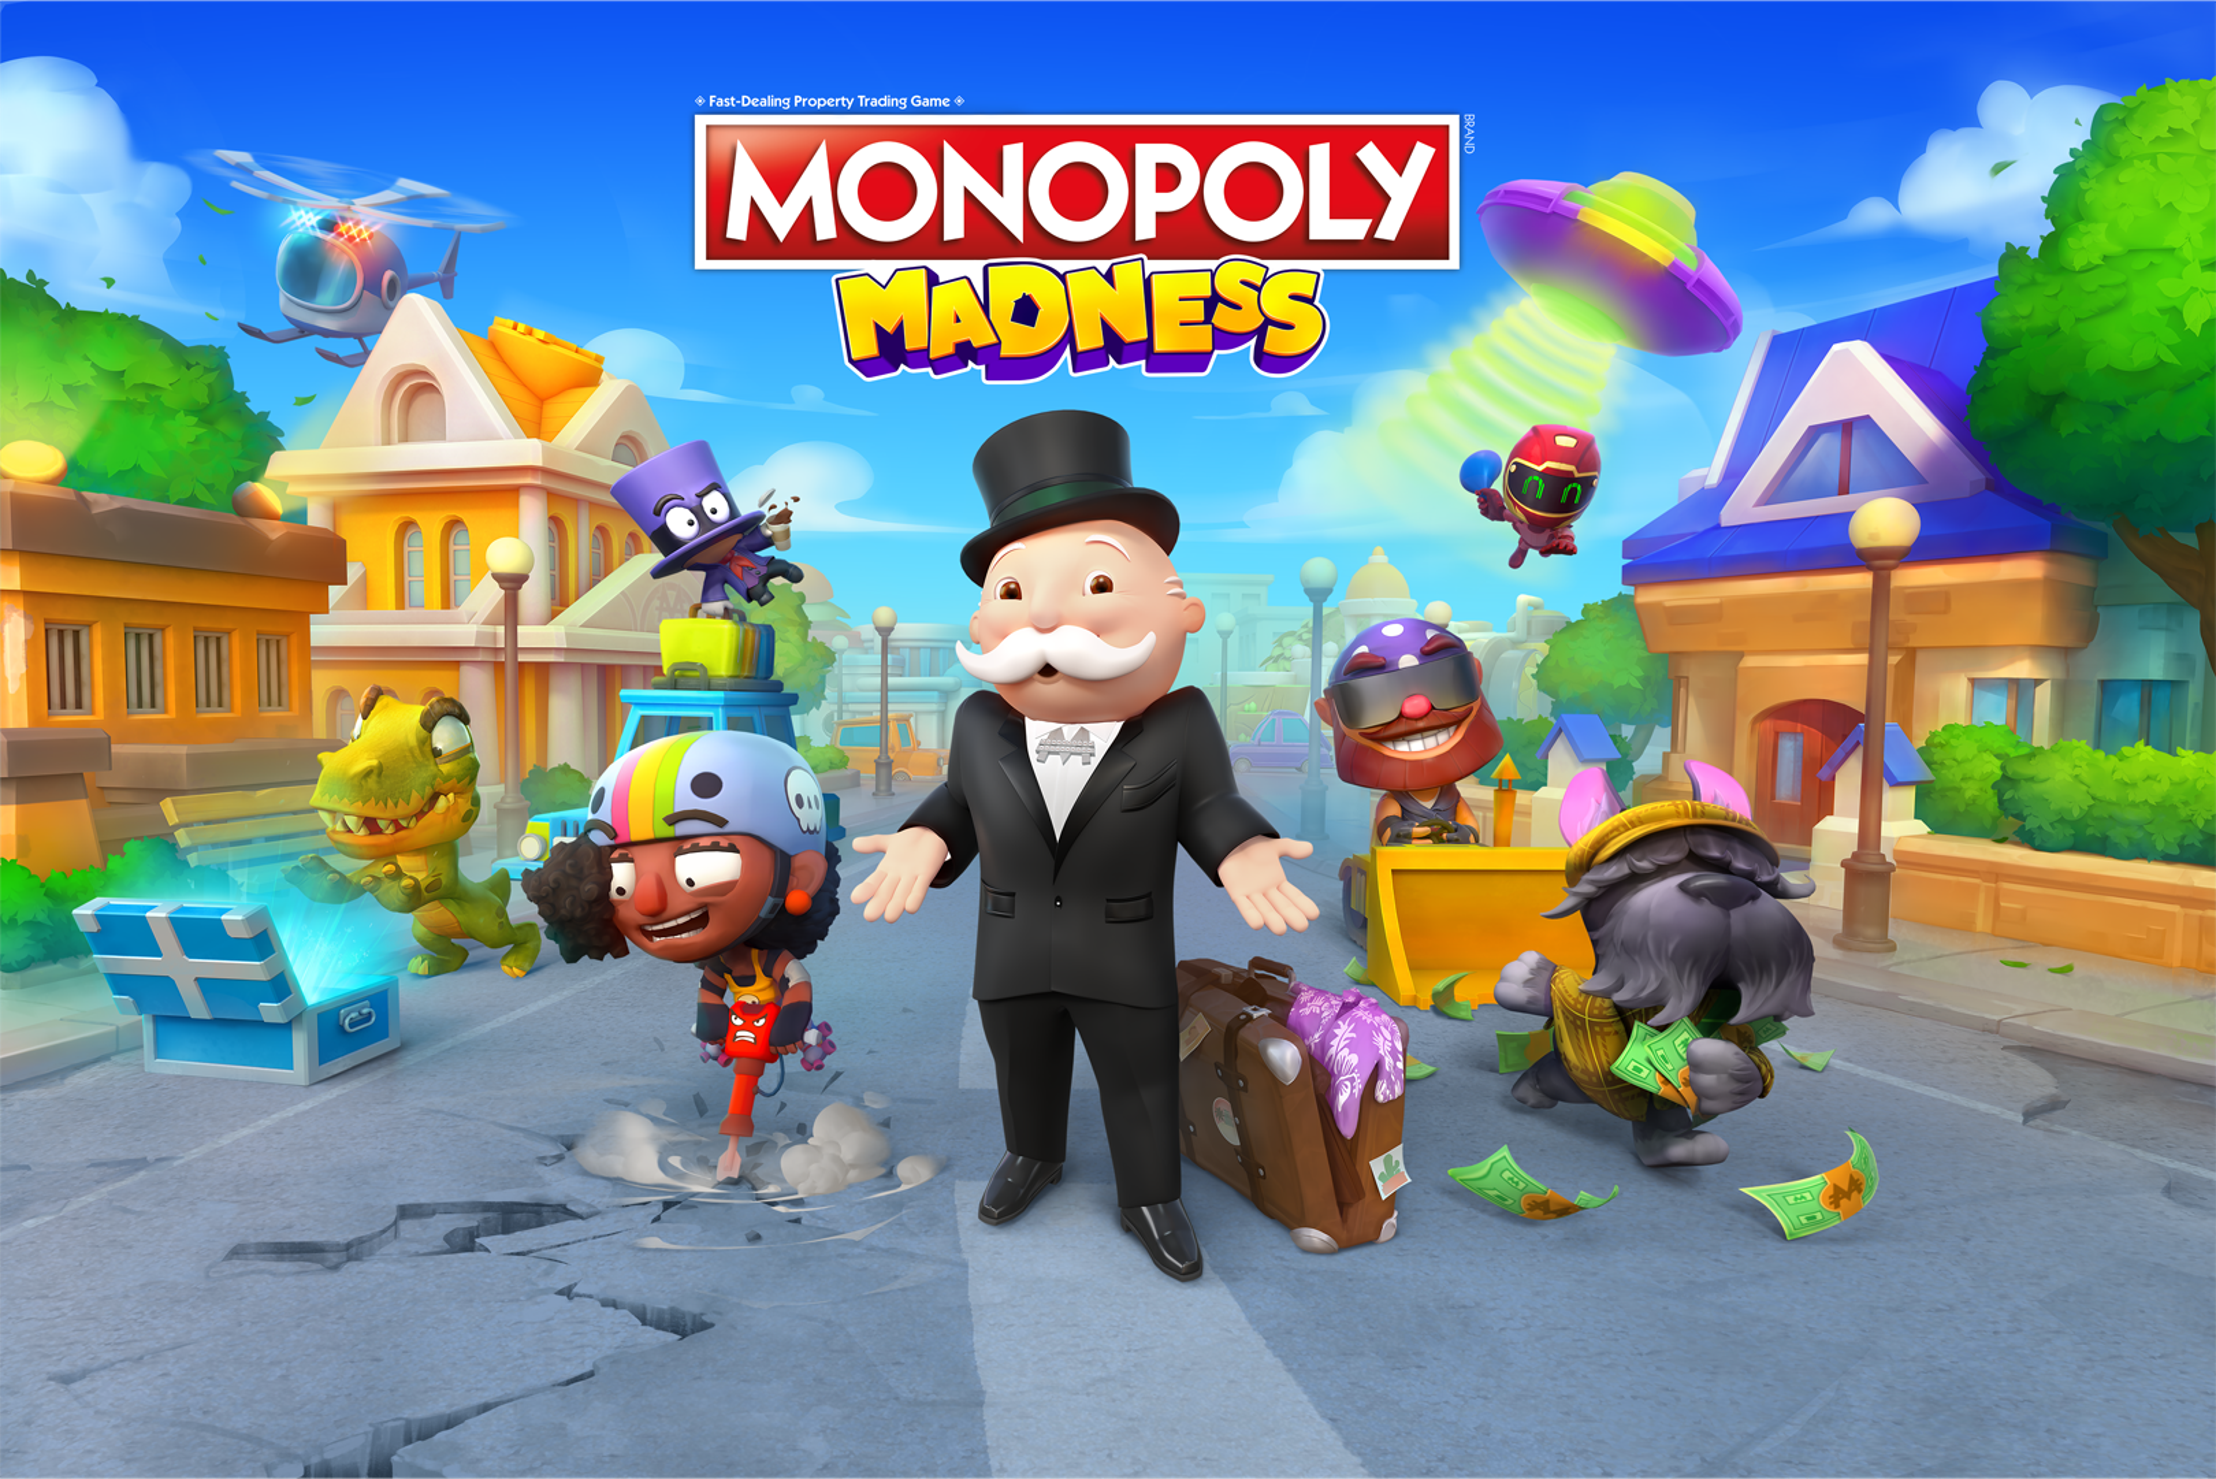 Preview: MONOPOLY MADNESS BRINGT DAS MONOPOLY-ERLEBNIS IN DIE ARENA